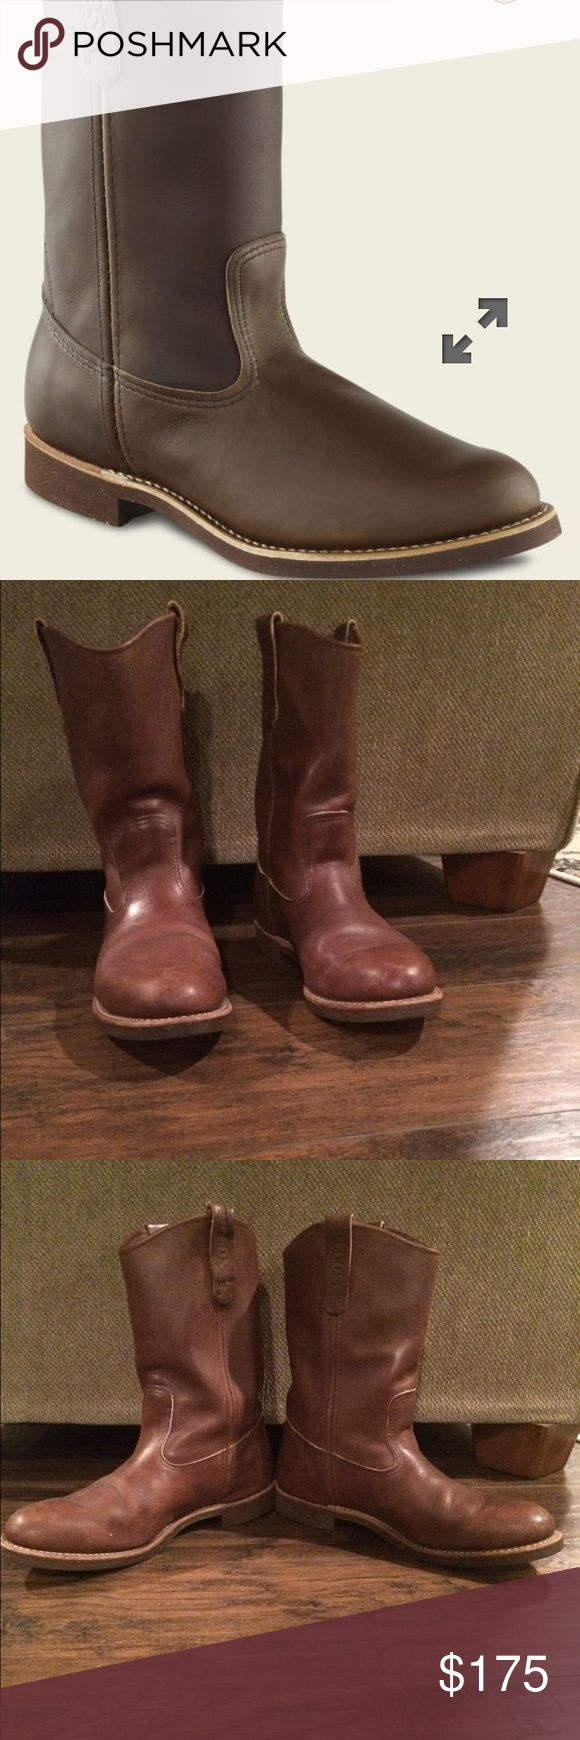 Red Wing Pecos pull on boots 1178 Wore sparingly, never broken in. Red Wing Shoes Shoes Cowboy & Western Boots